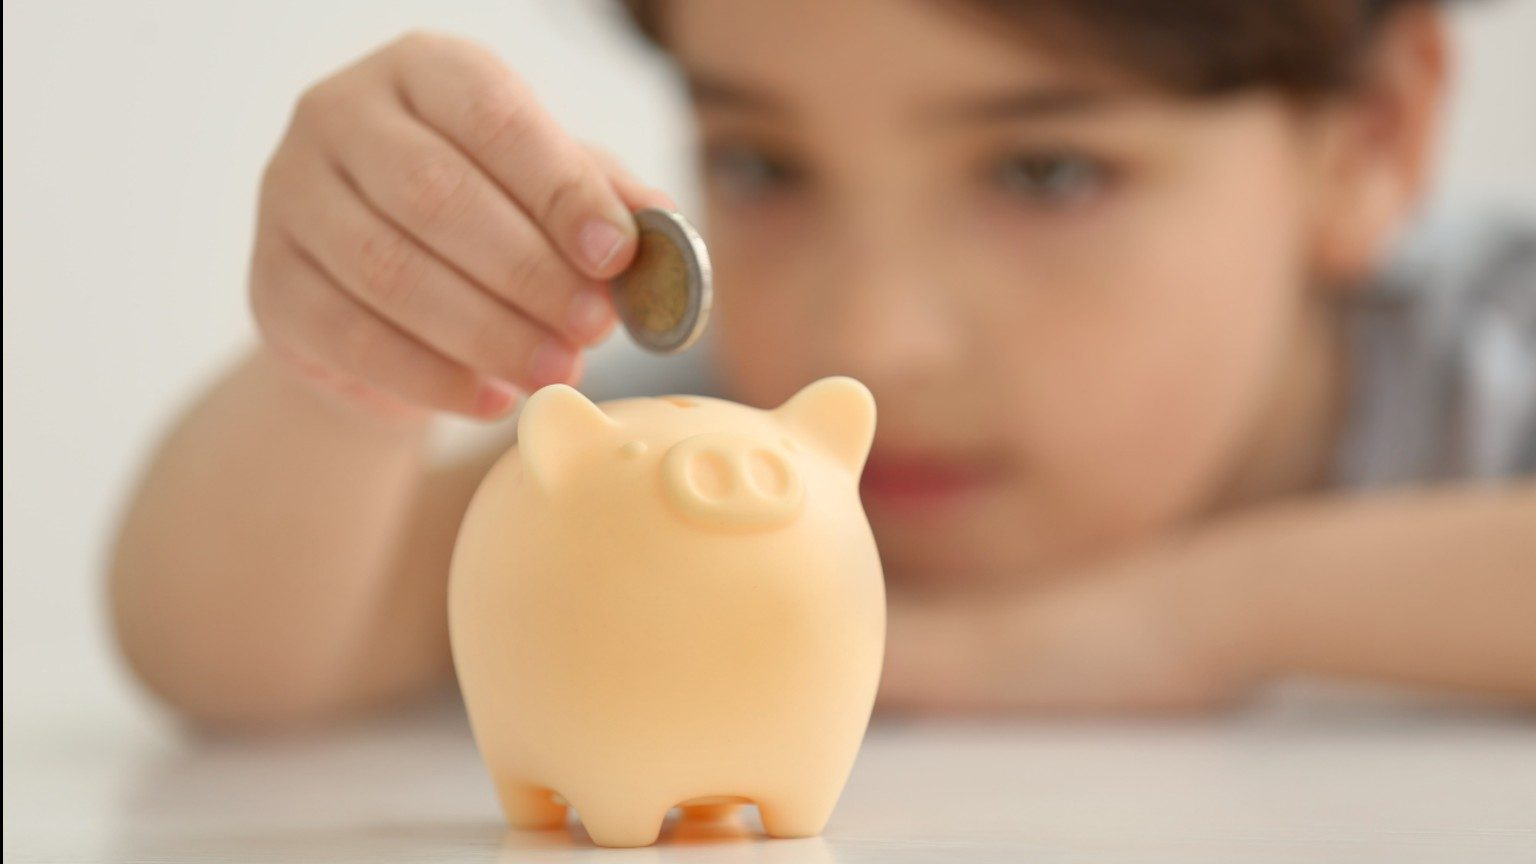 A child in the background dropping a coin in a piggy bank